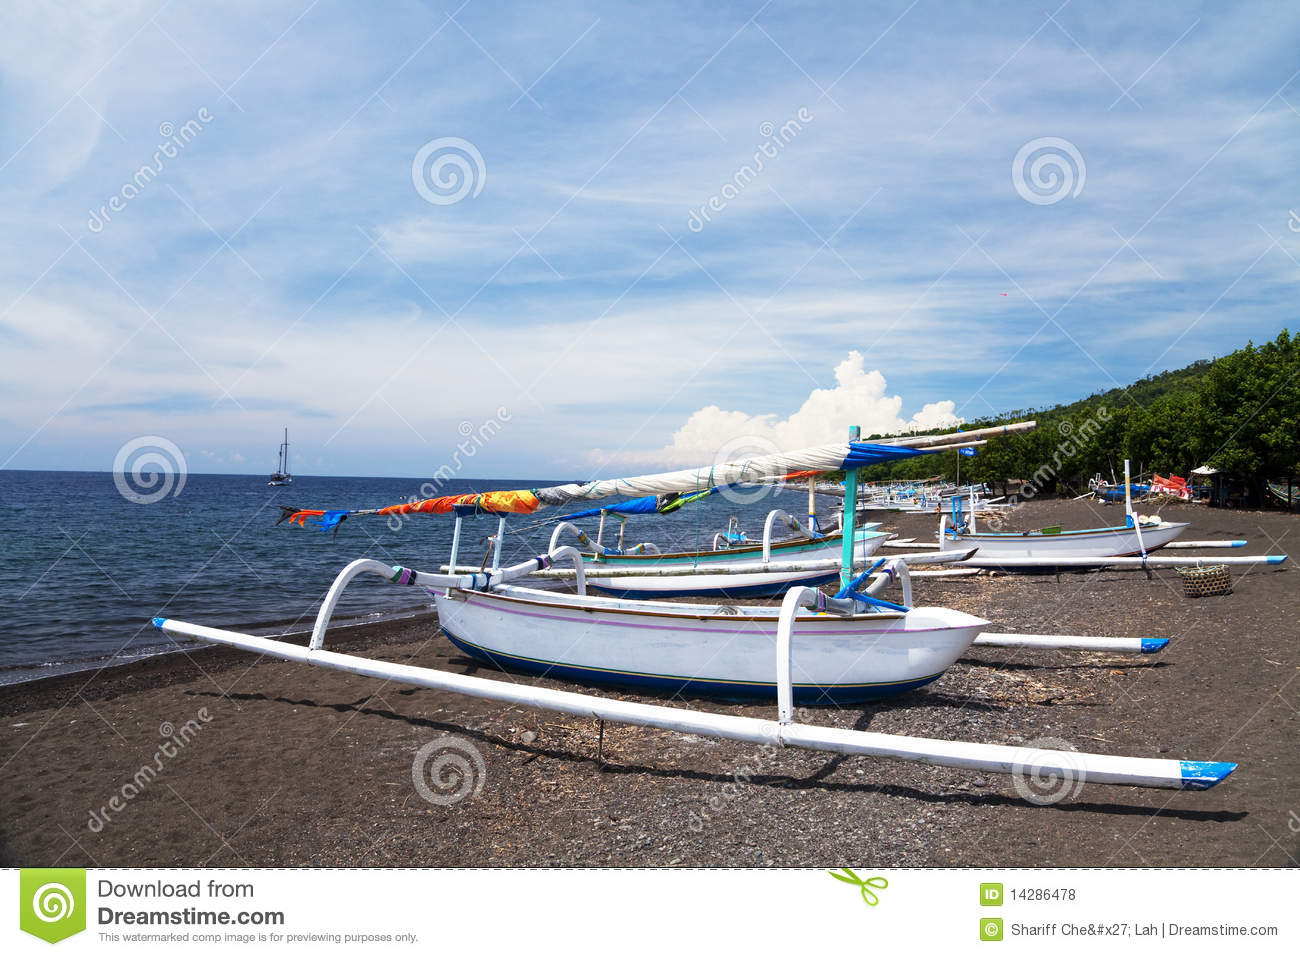 Fishing Boats On Beach, Amed, Bali, Indonesia Stock Photo - Image: 14286478